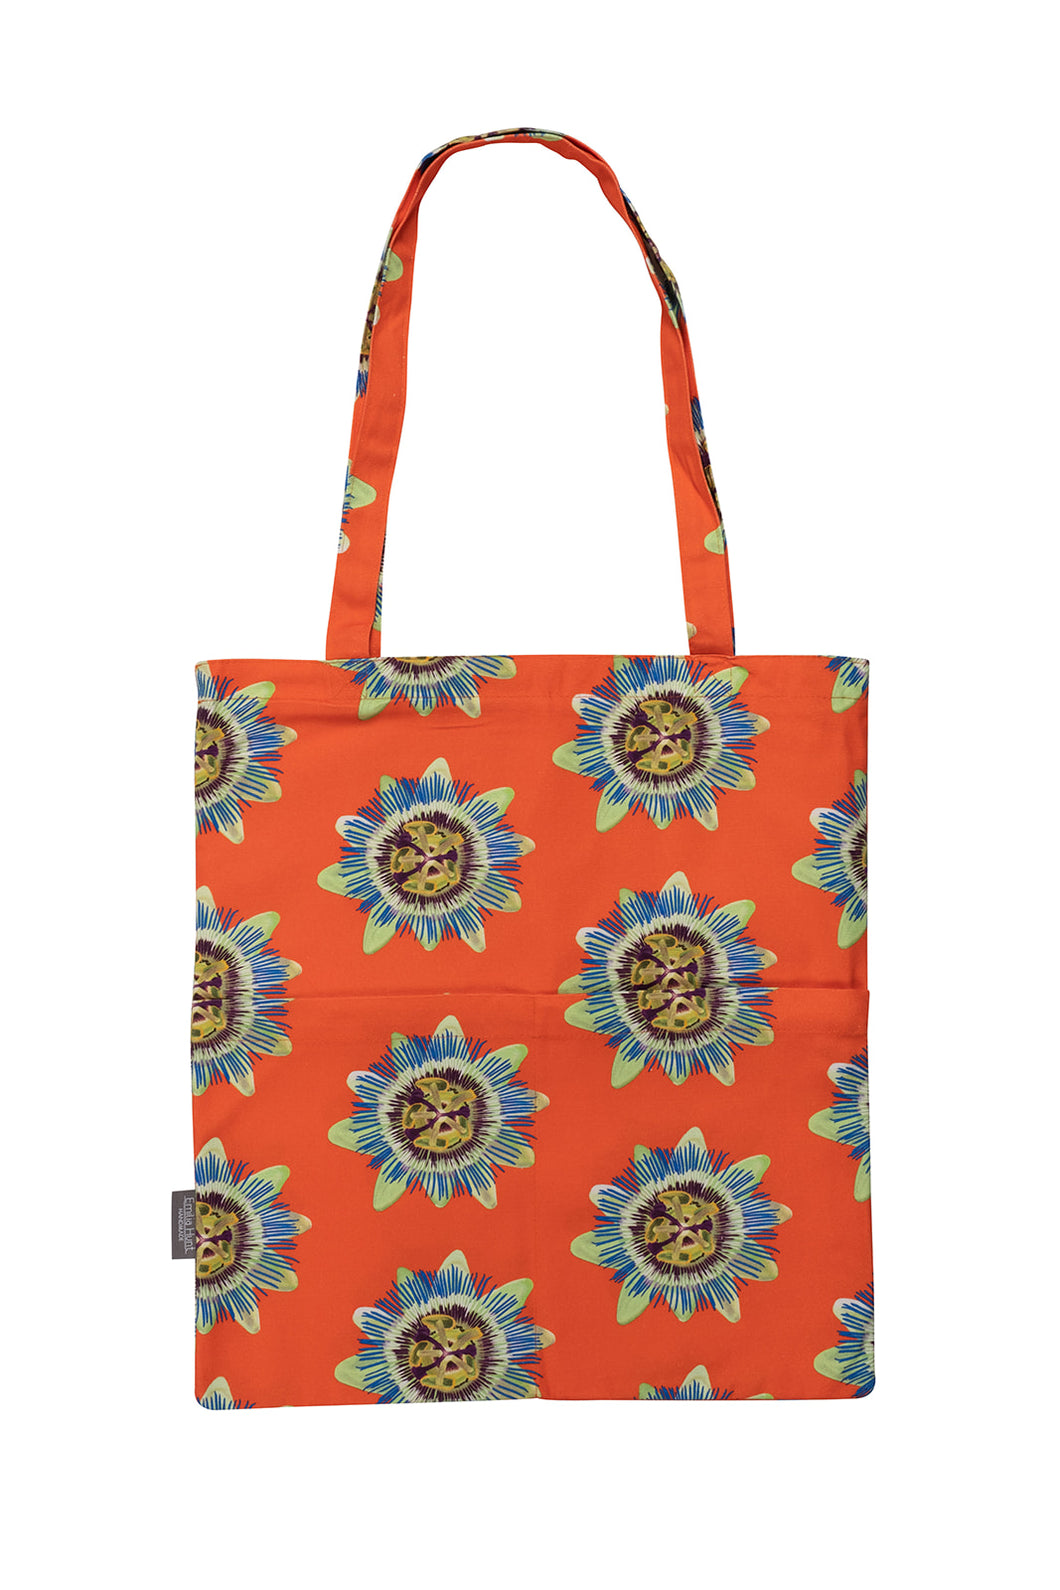 Coral Passion Flower Tote Bag